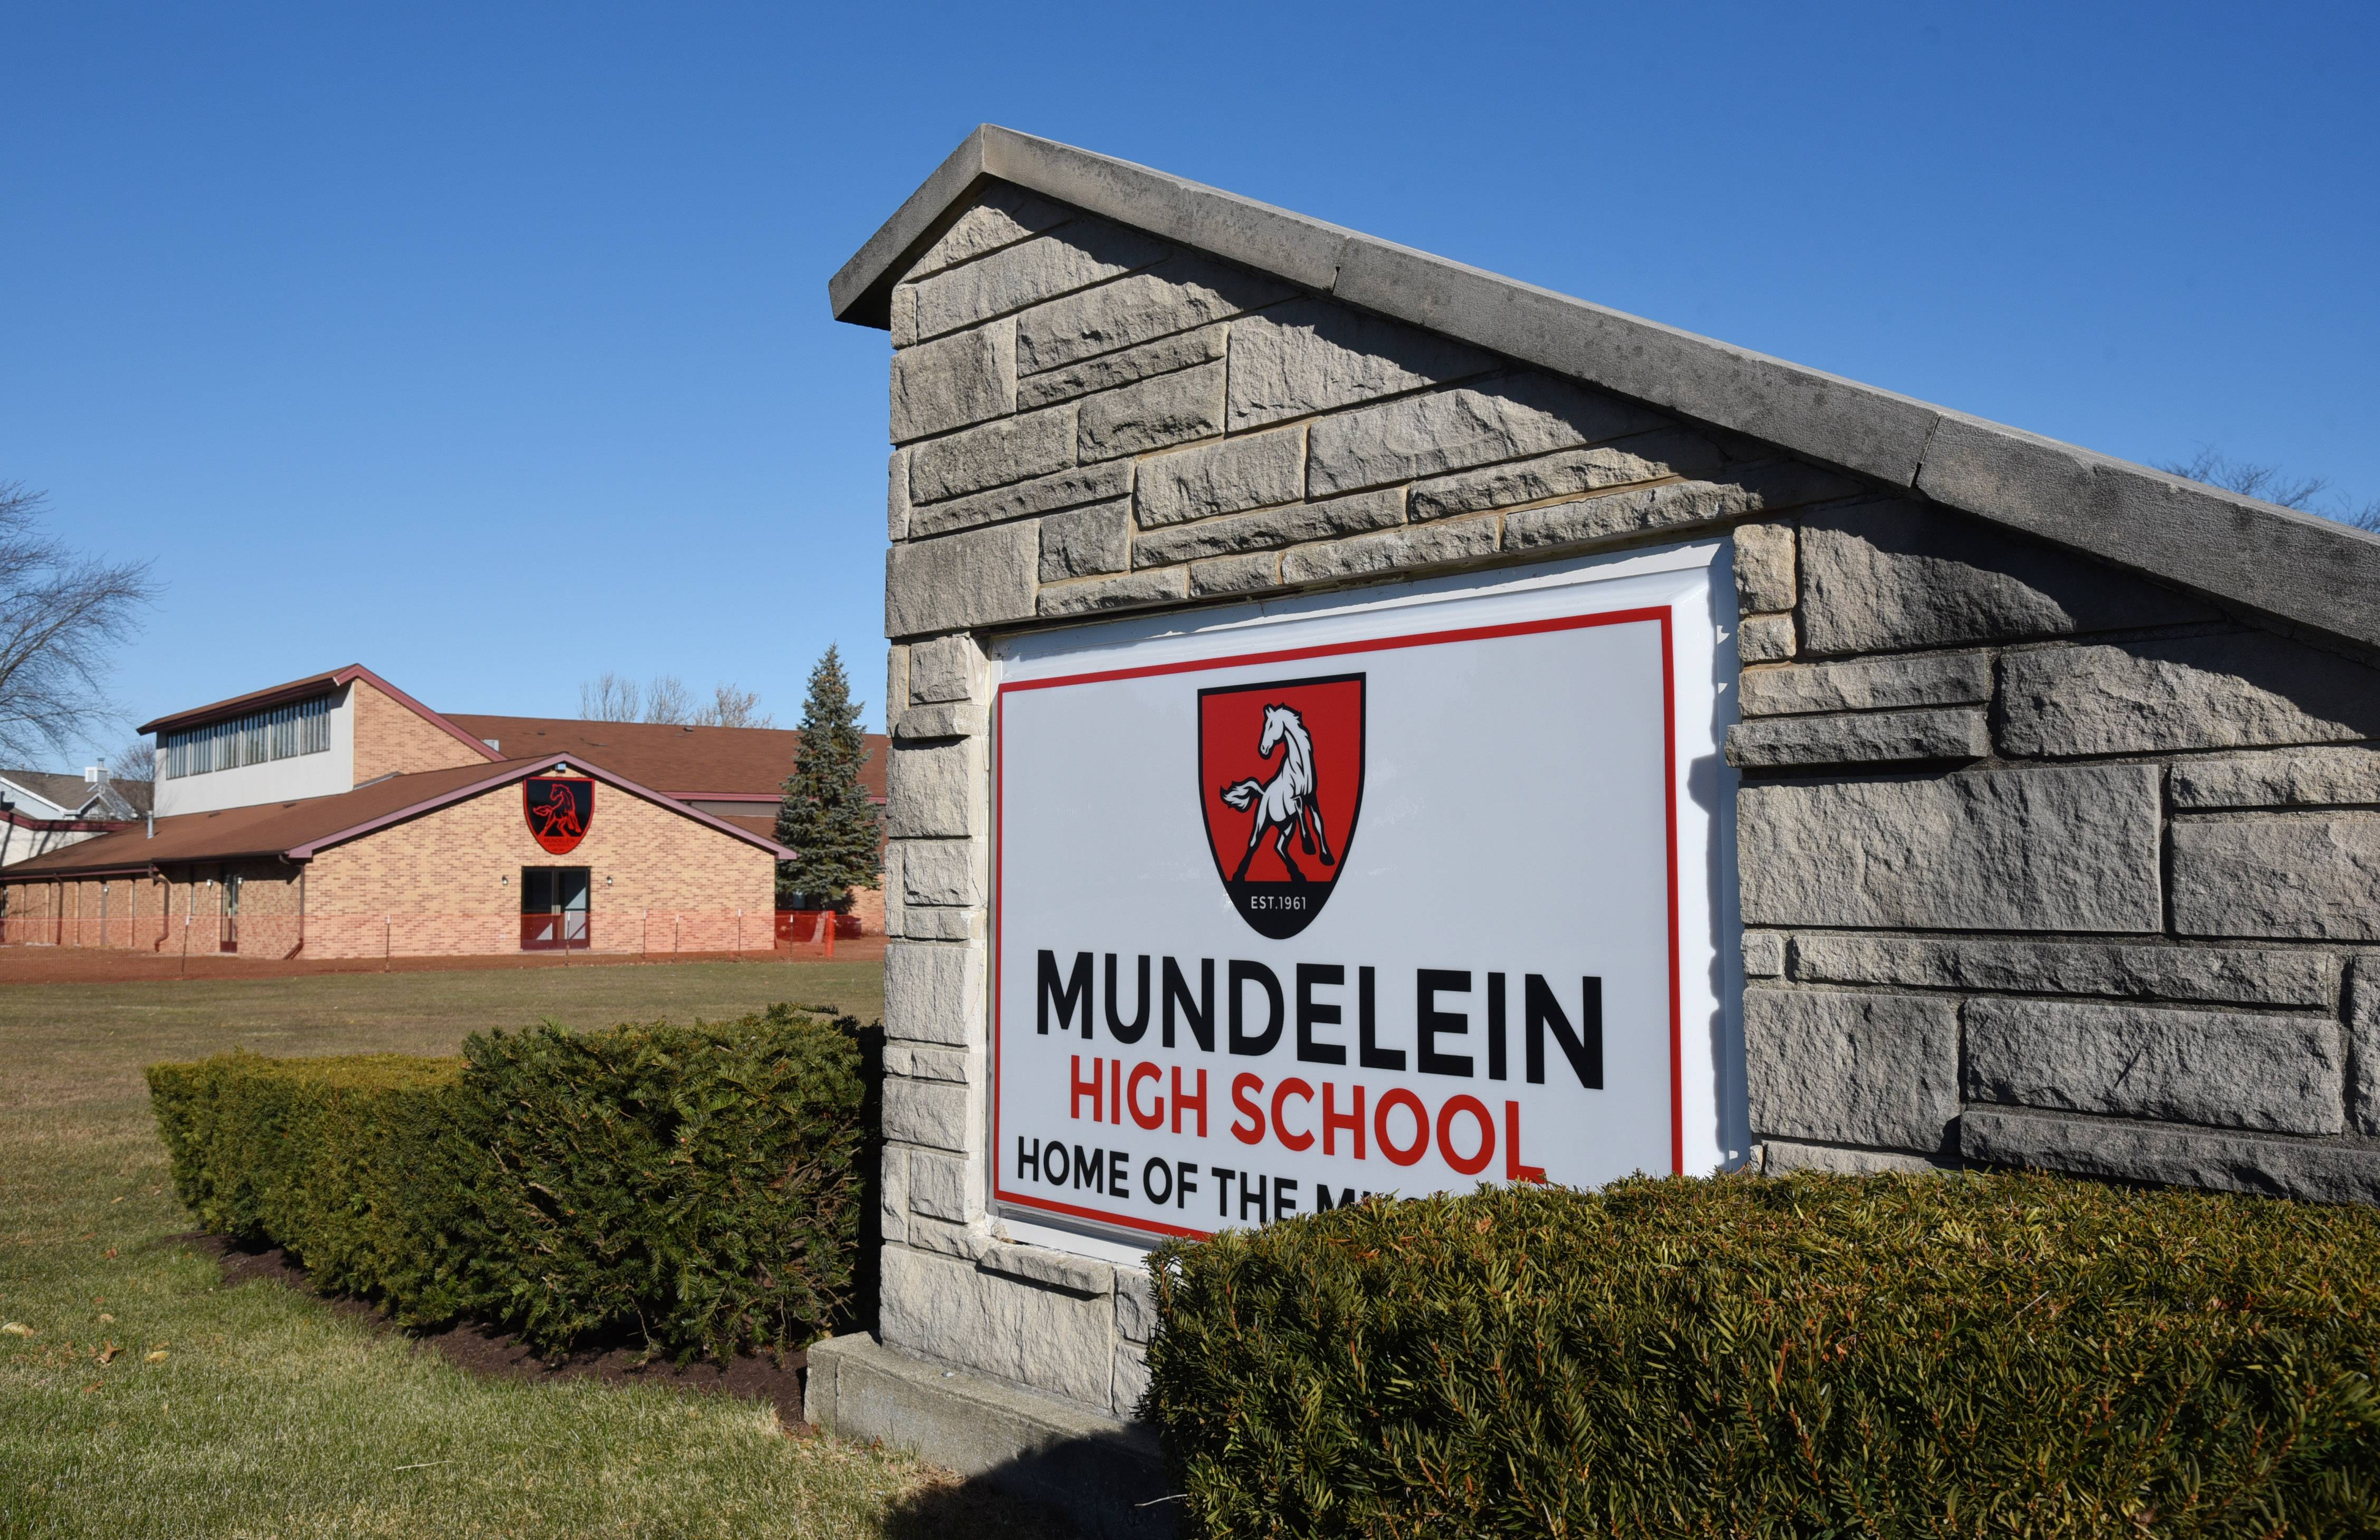 Mundelein High School officials are considering using a former church property adjacent to the school for classrooms, special education programs and administrative offices.